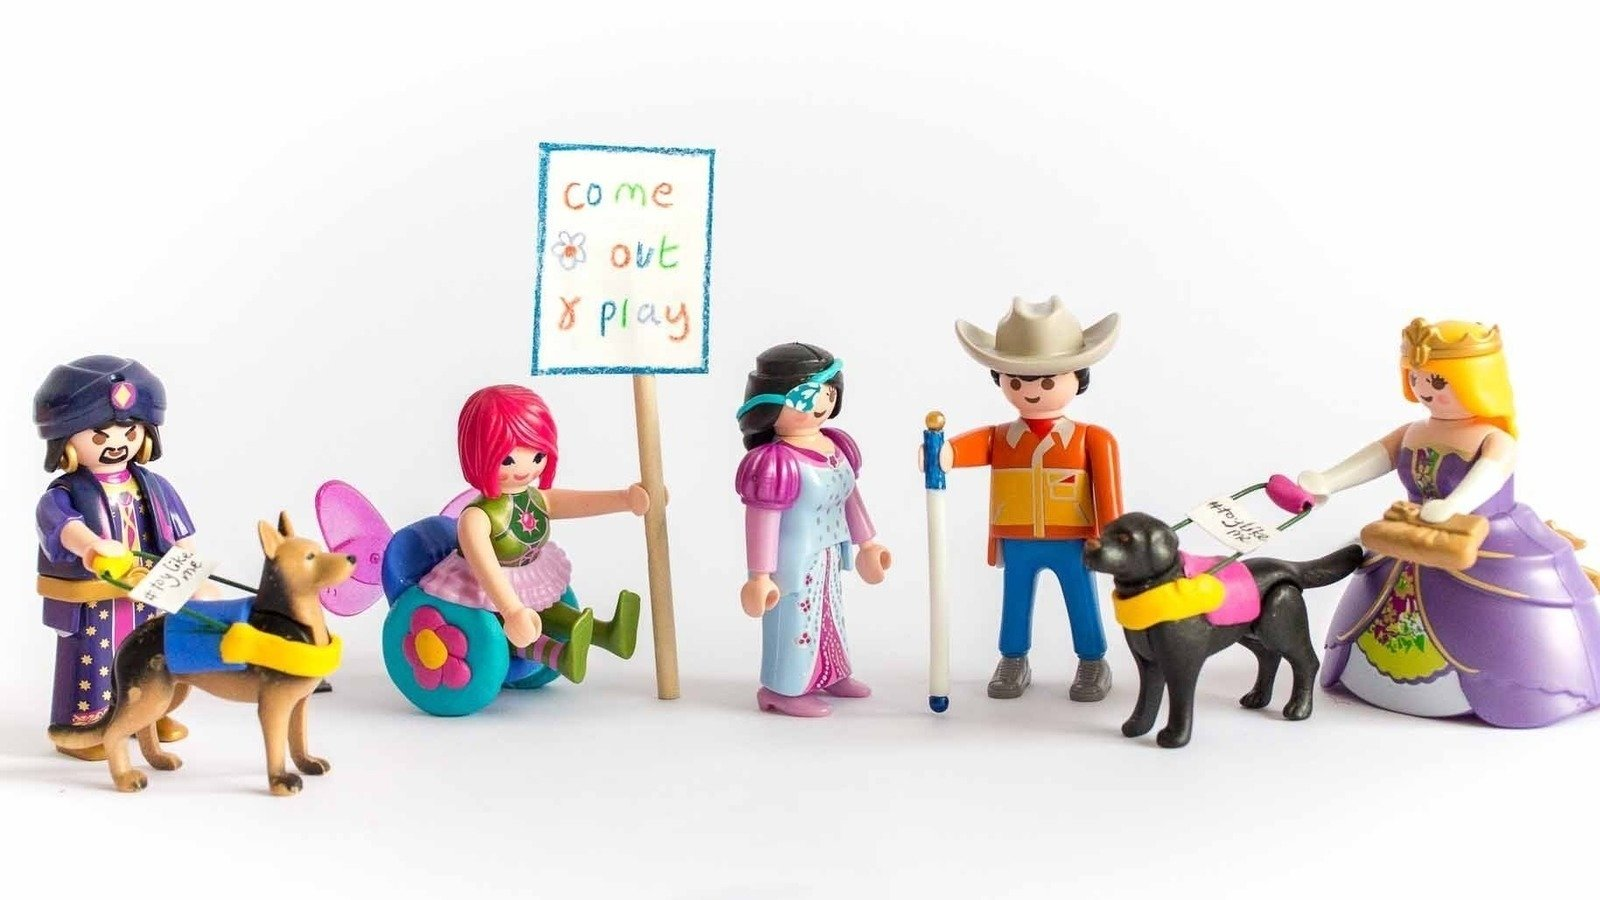 Petition Playmobil Please Make Disability Toys And Help